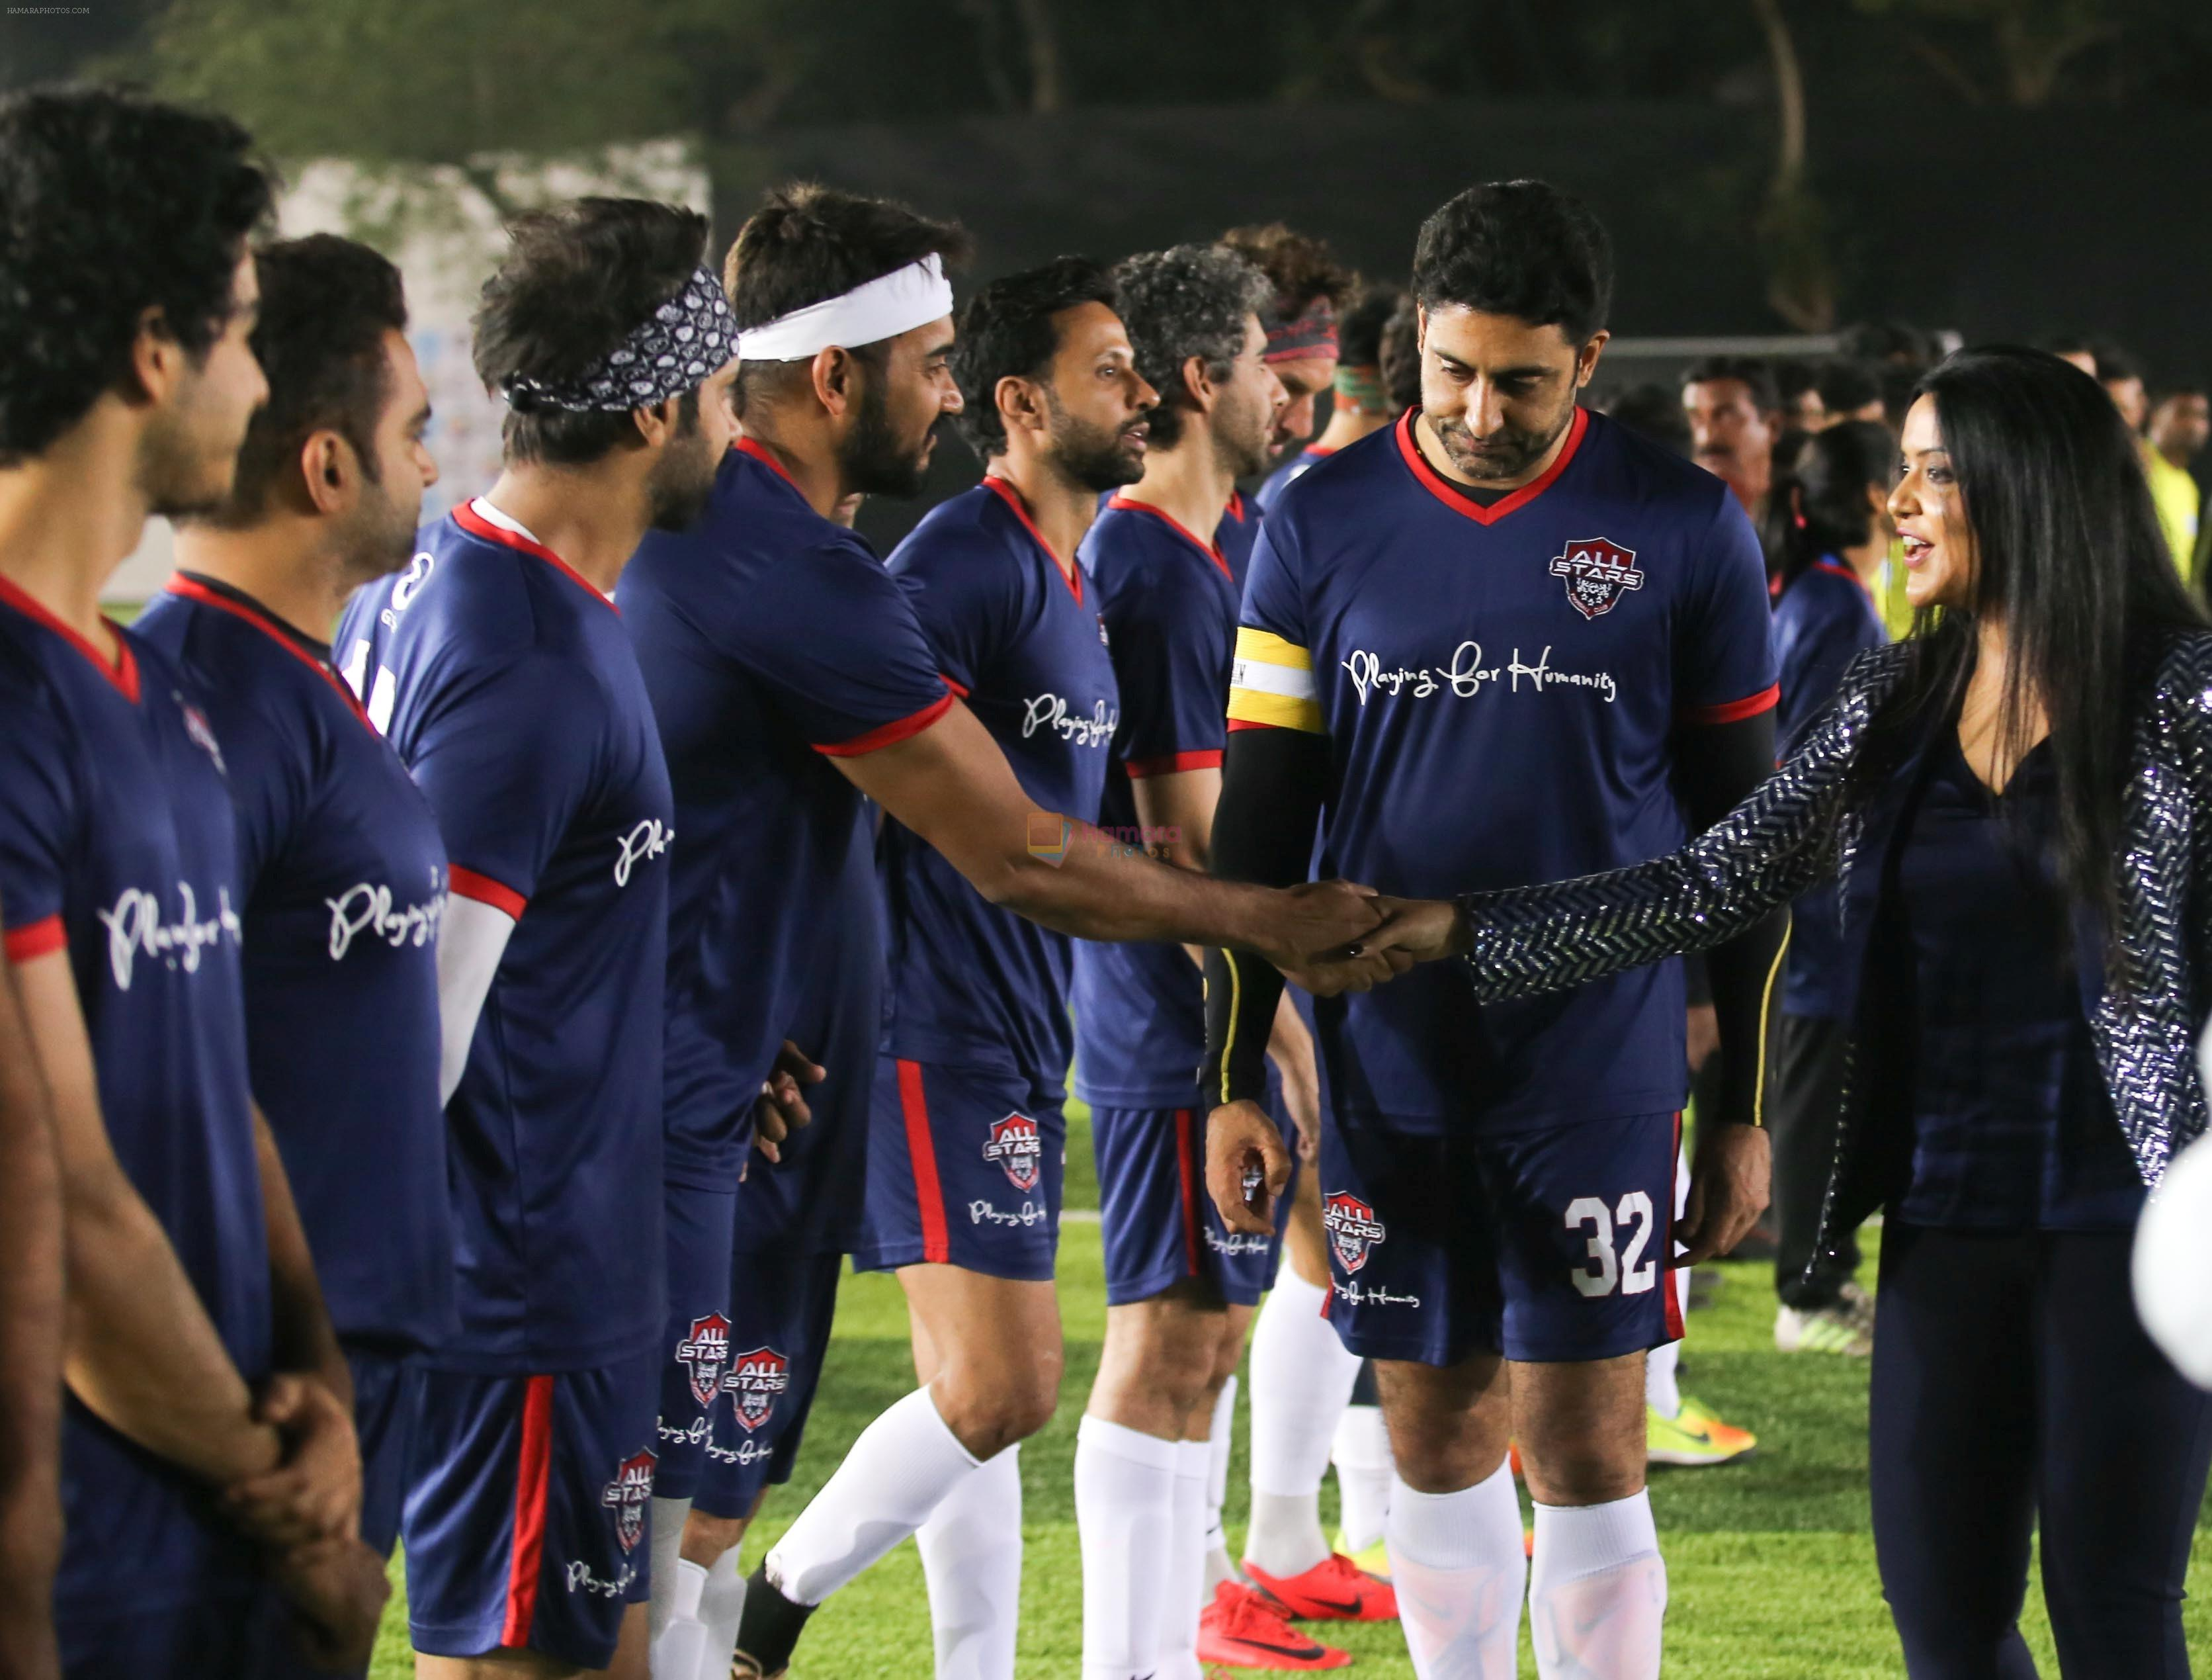 Abhishek Bachchan at Jamnabai Narsee Football Match in Jambai School Ground on 11th Dec 2018